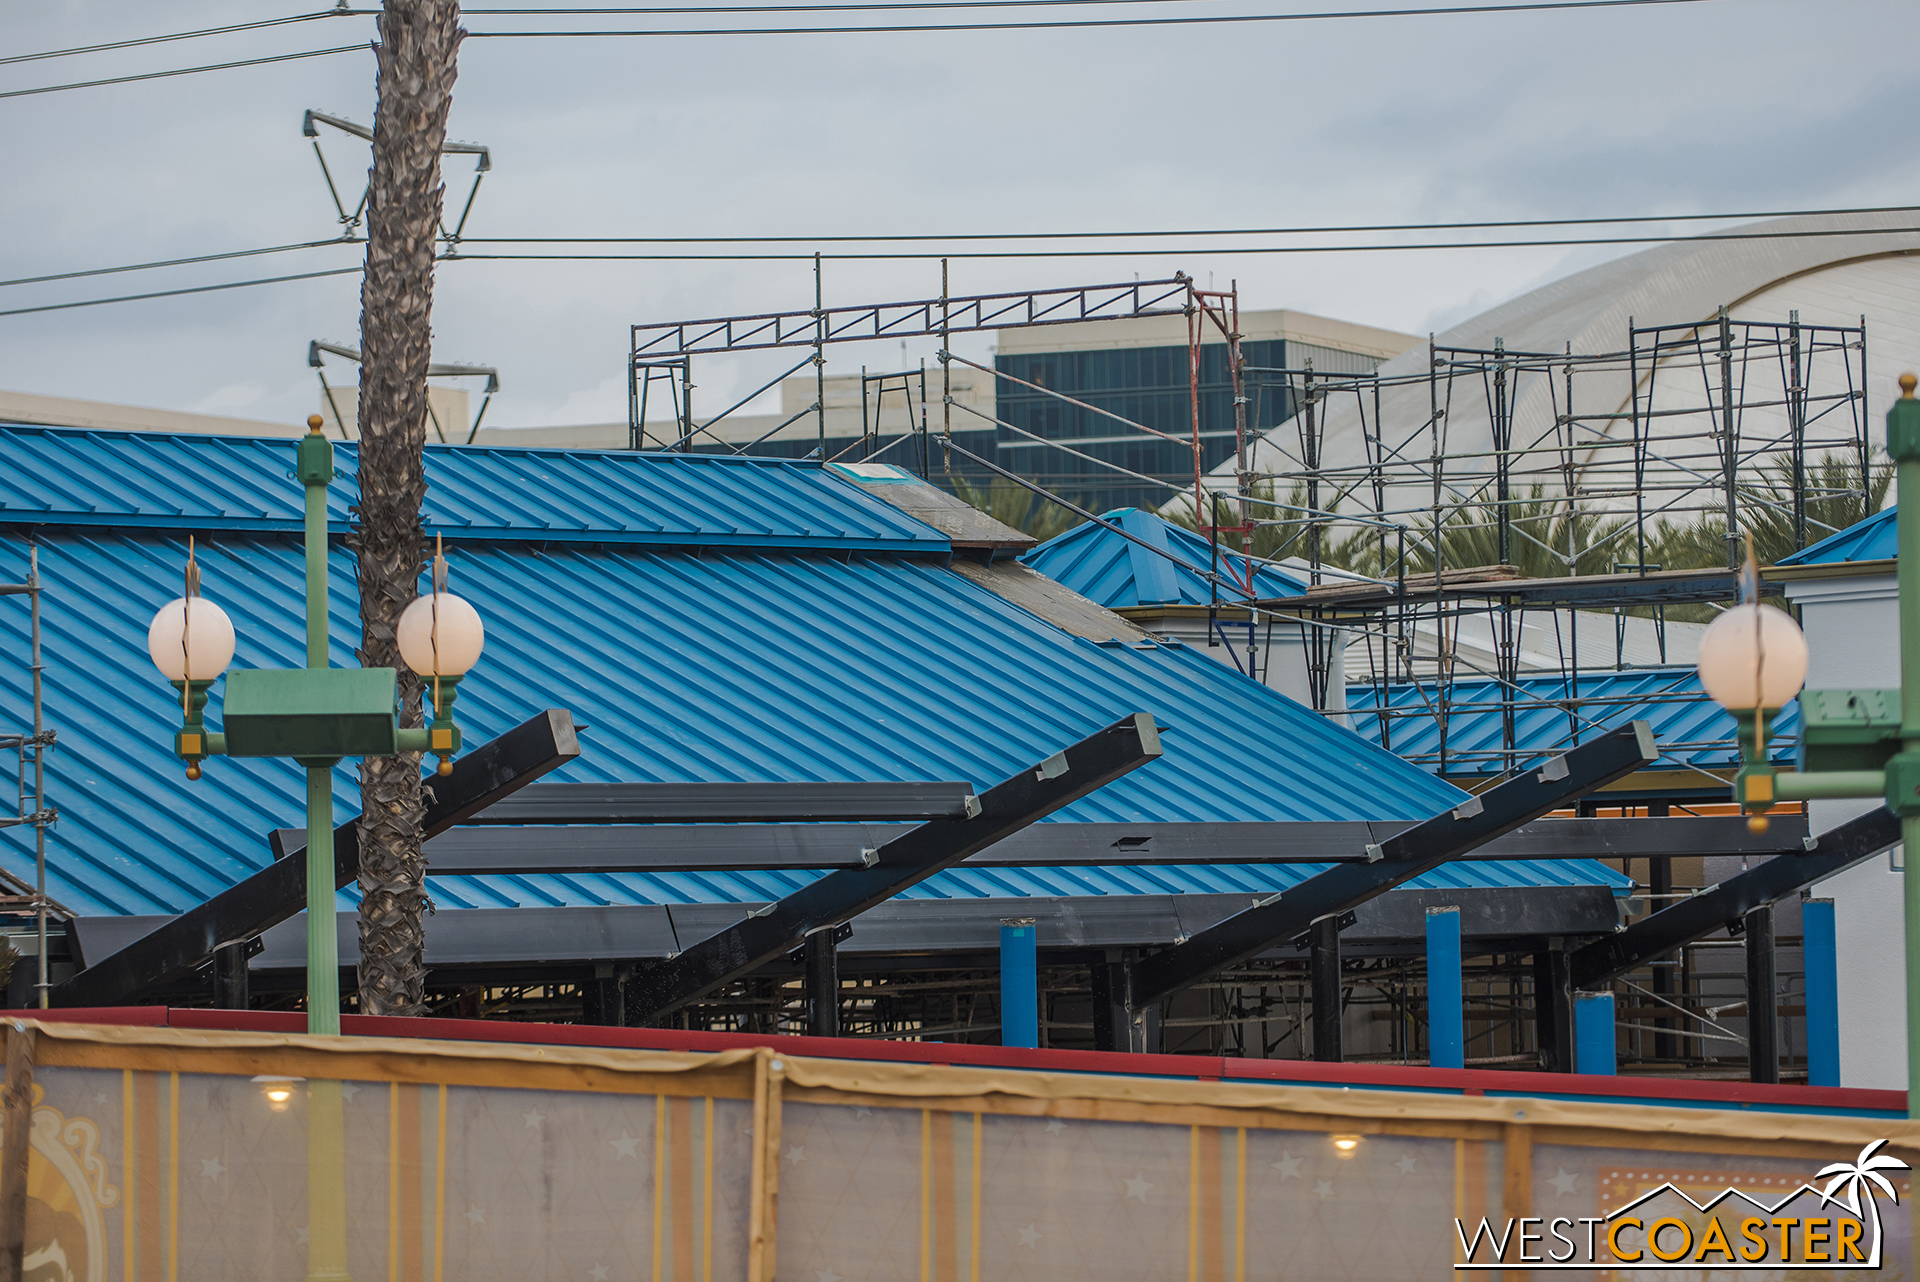 Here's a closer look at the new beams and joists that will form the chevron addition to make the roller coaster look more mid-century modern.